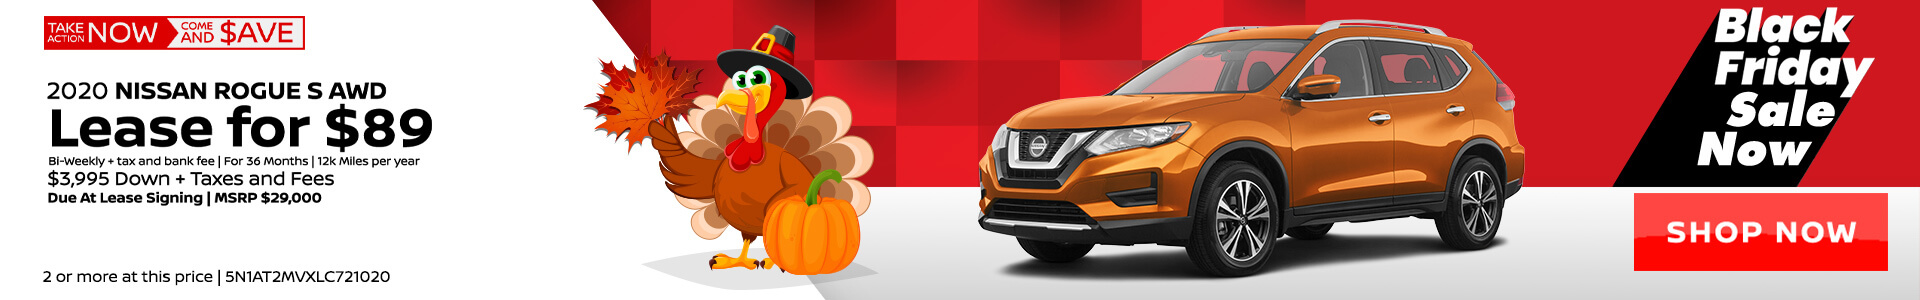 Nissan Rogue $89 Lease